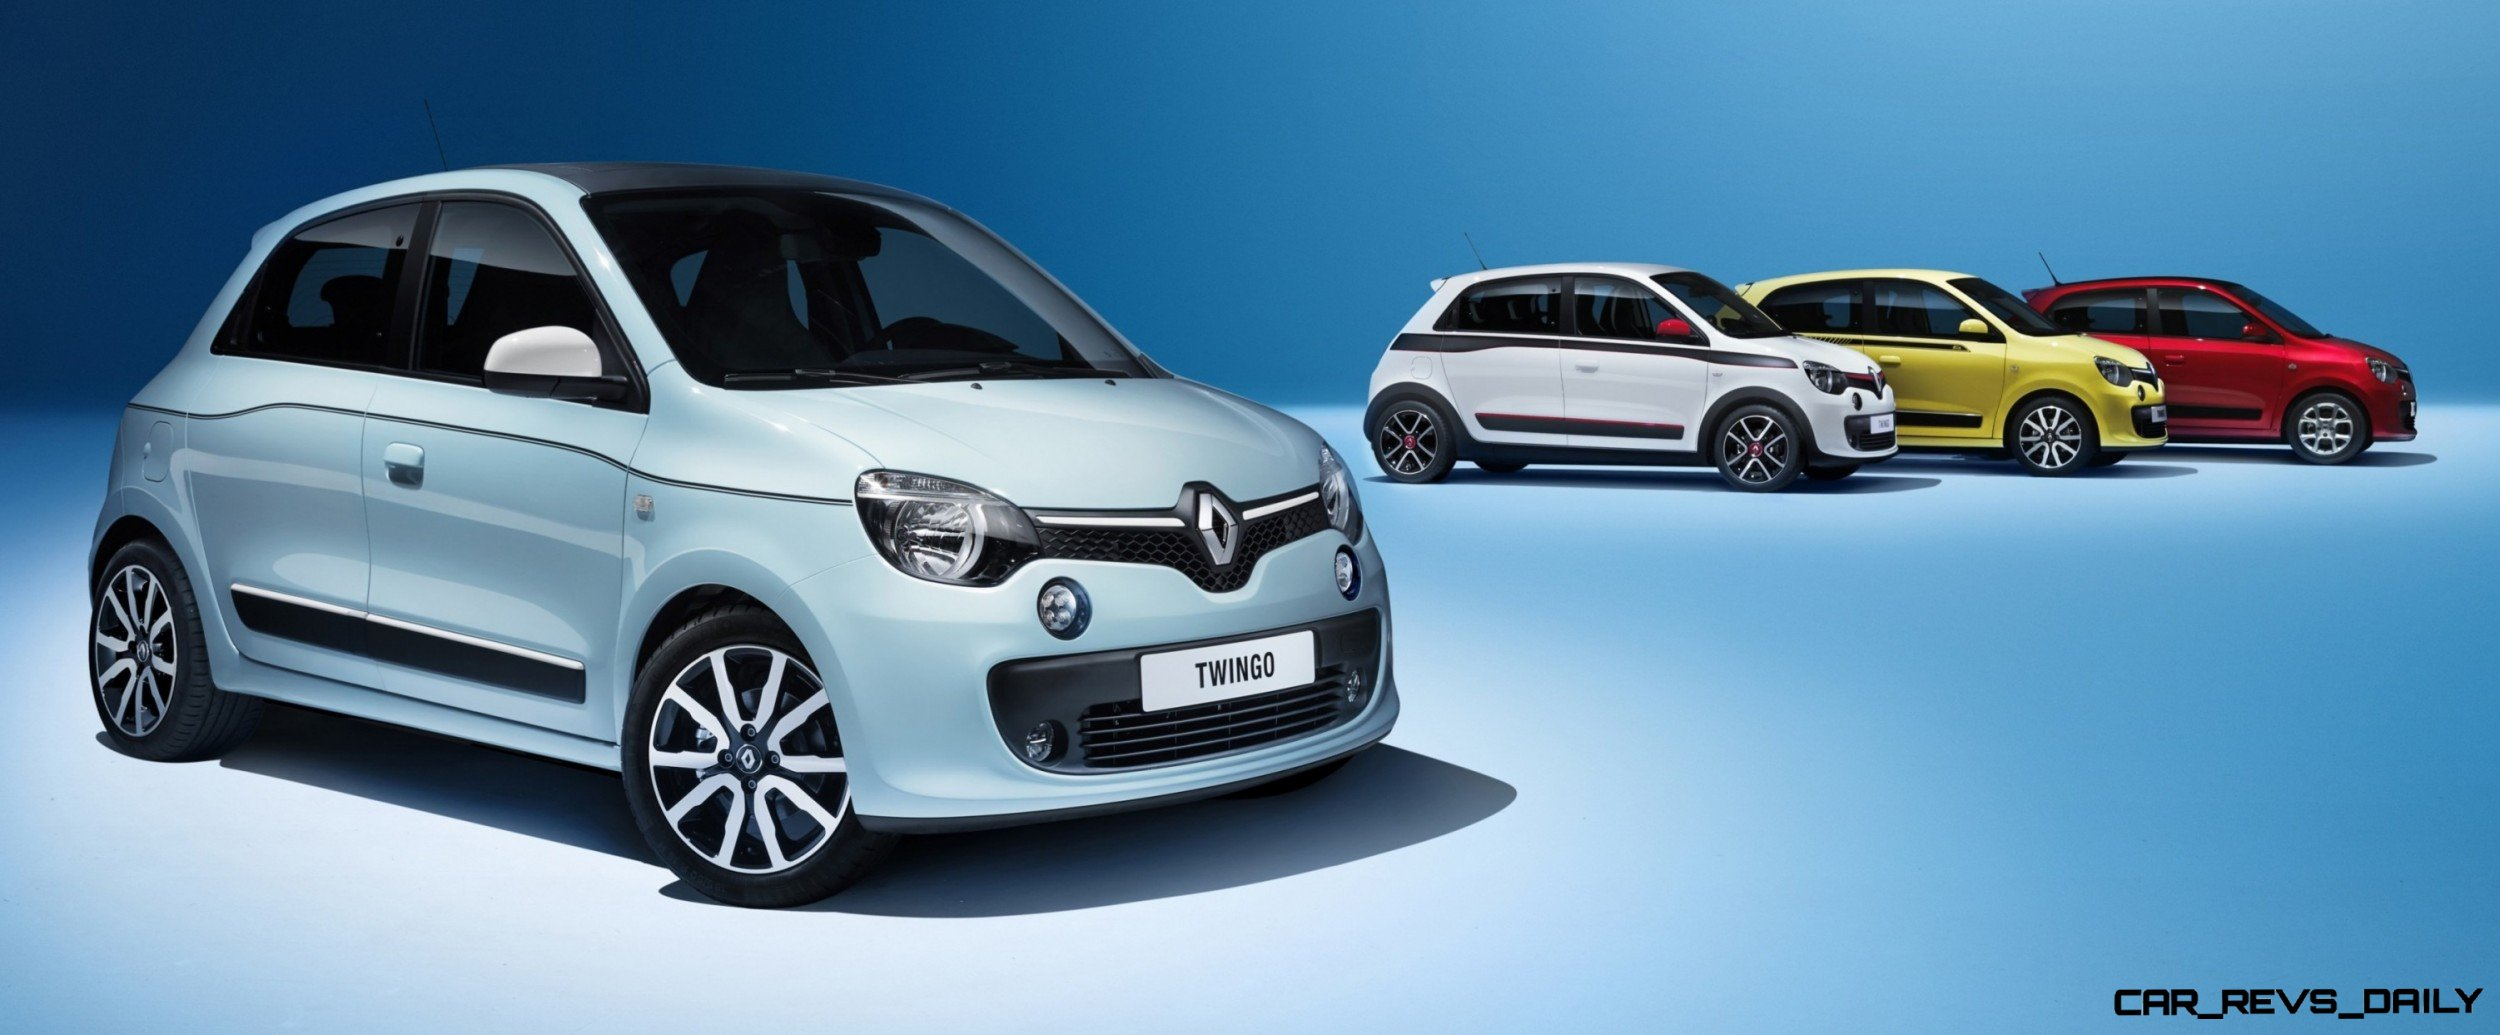 Le Meilleur Maybe The Twingo Ate Your Babee All New Renault Ce Mois Ci